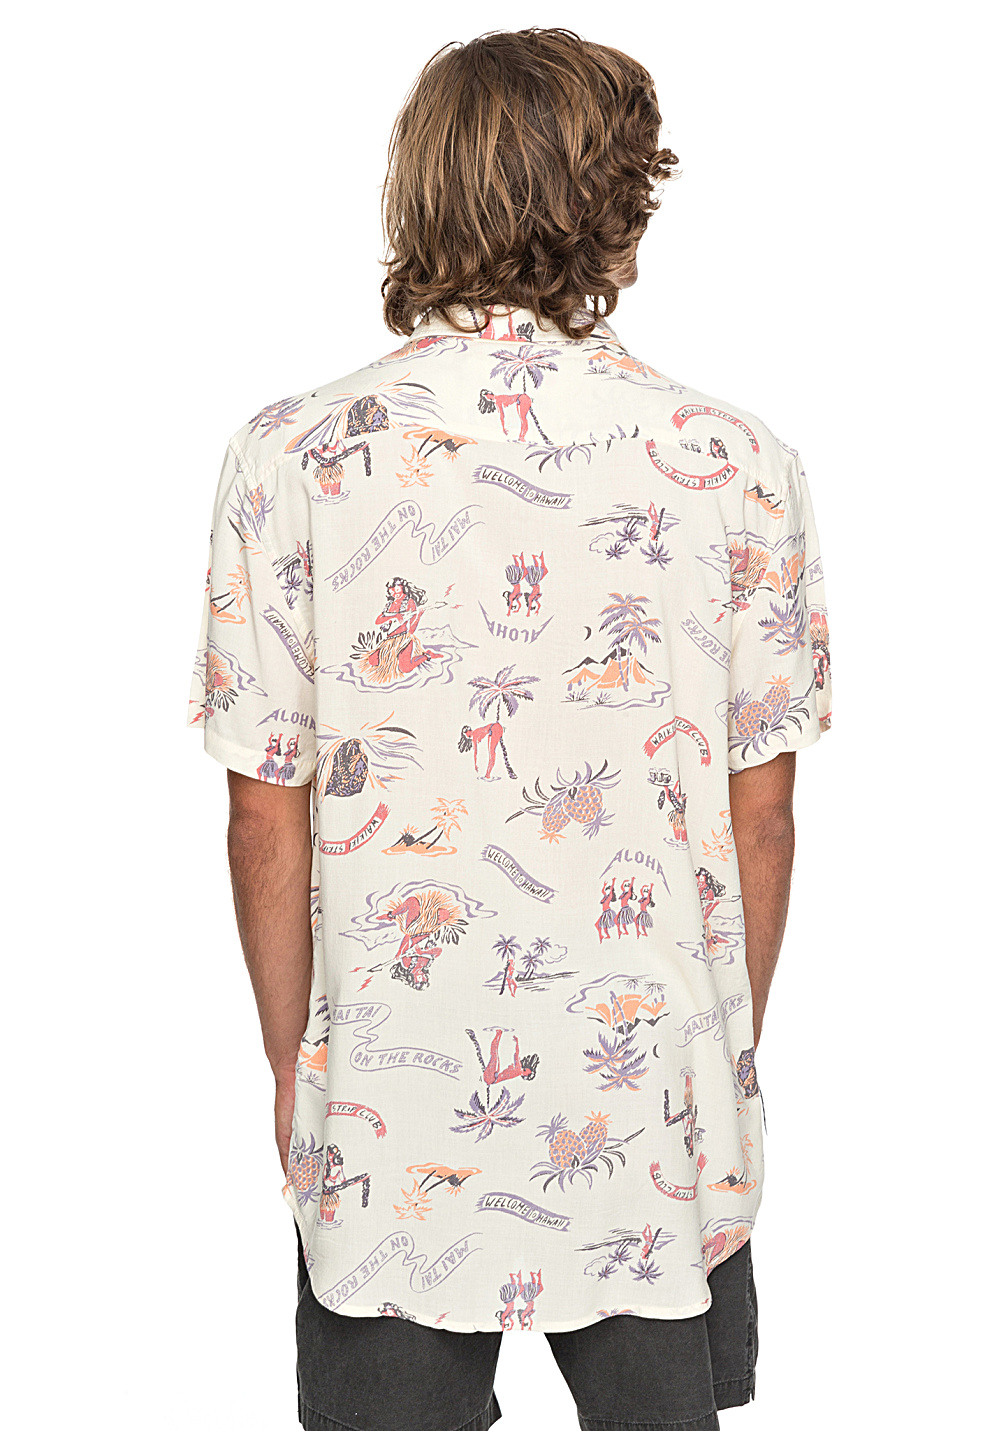 4694b1abe ... Quiksilver Aloha Strip Club - Shirt for Men - Multicolor. Back to  Overview. 1; 2. Previous